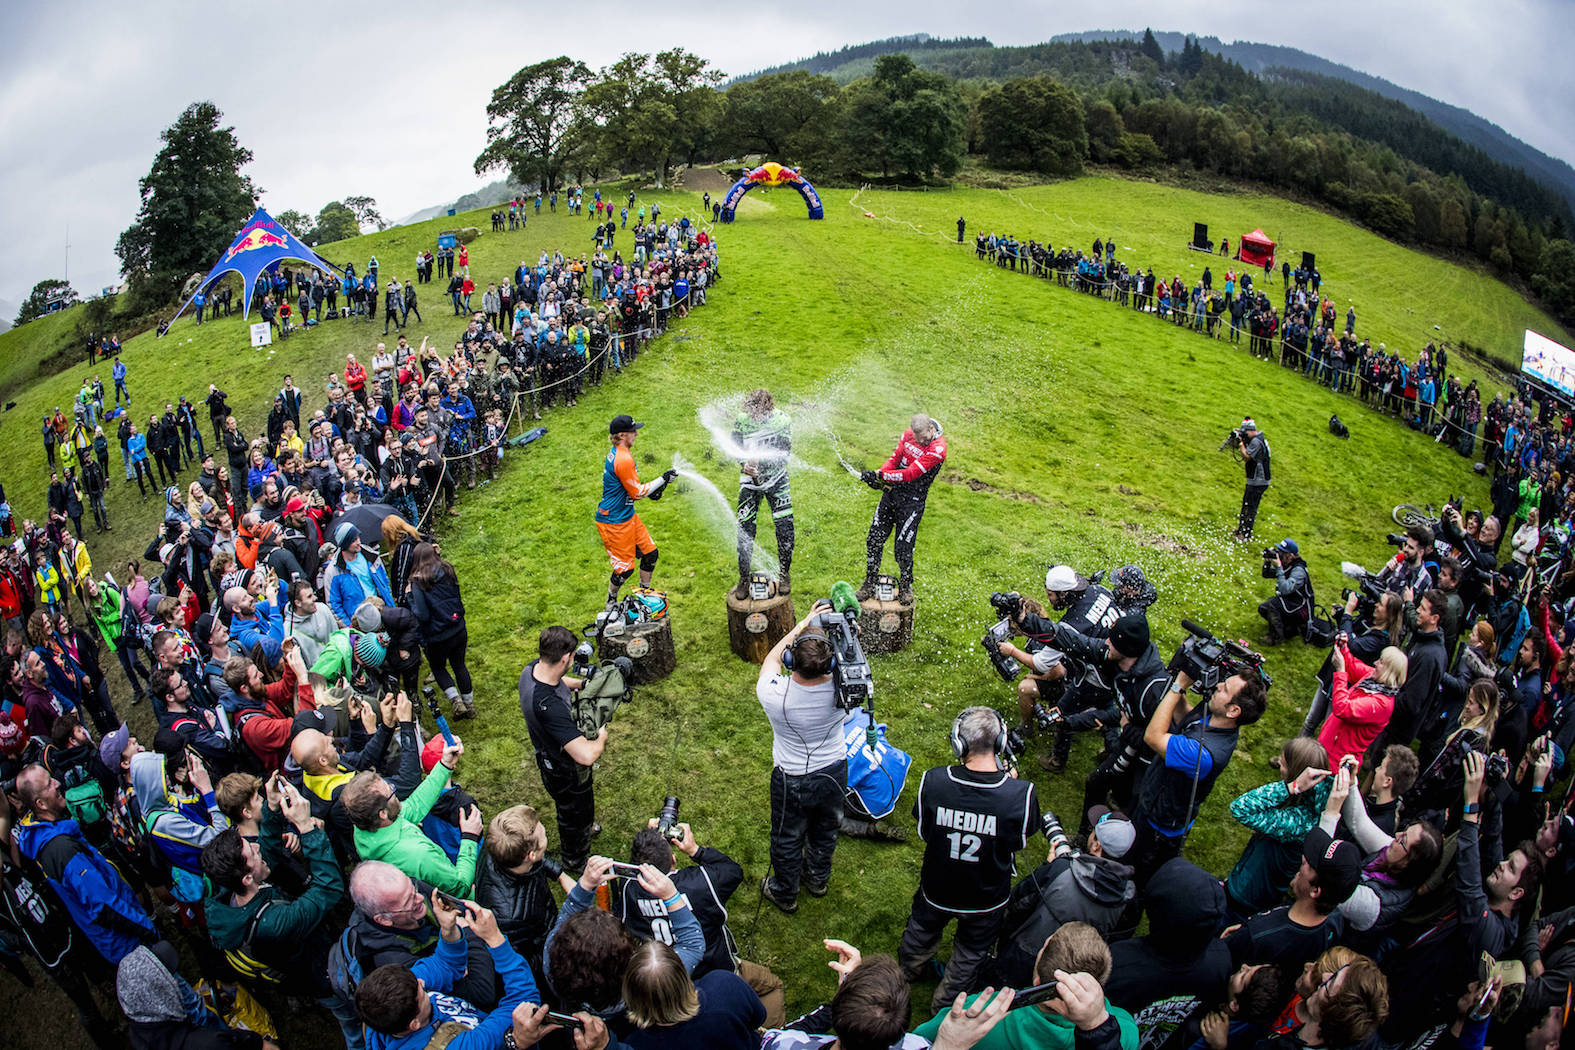 Downhill MTB winners of the 2017 Red Bull Hardline